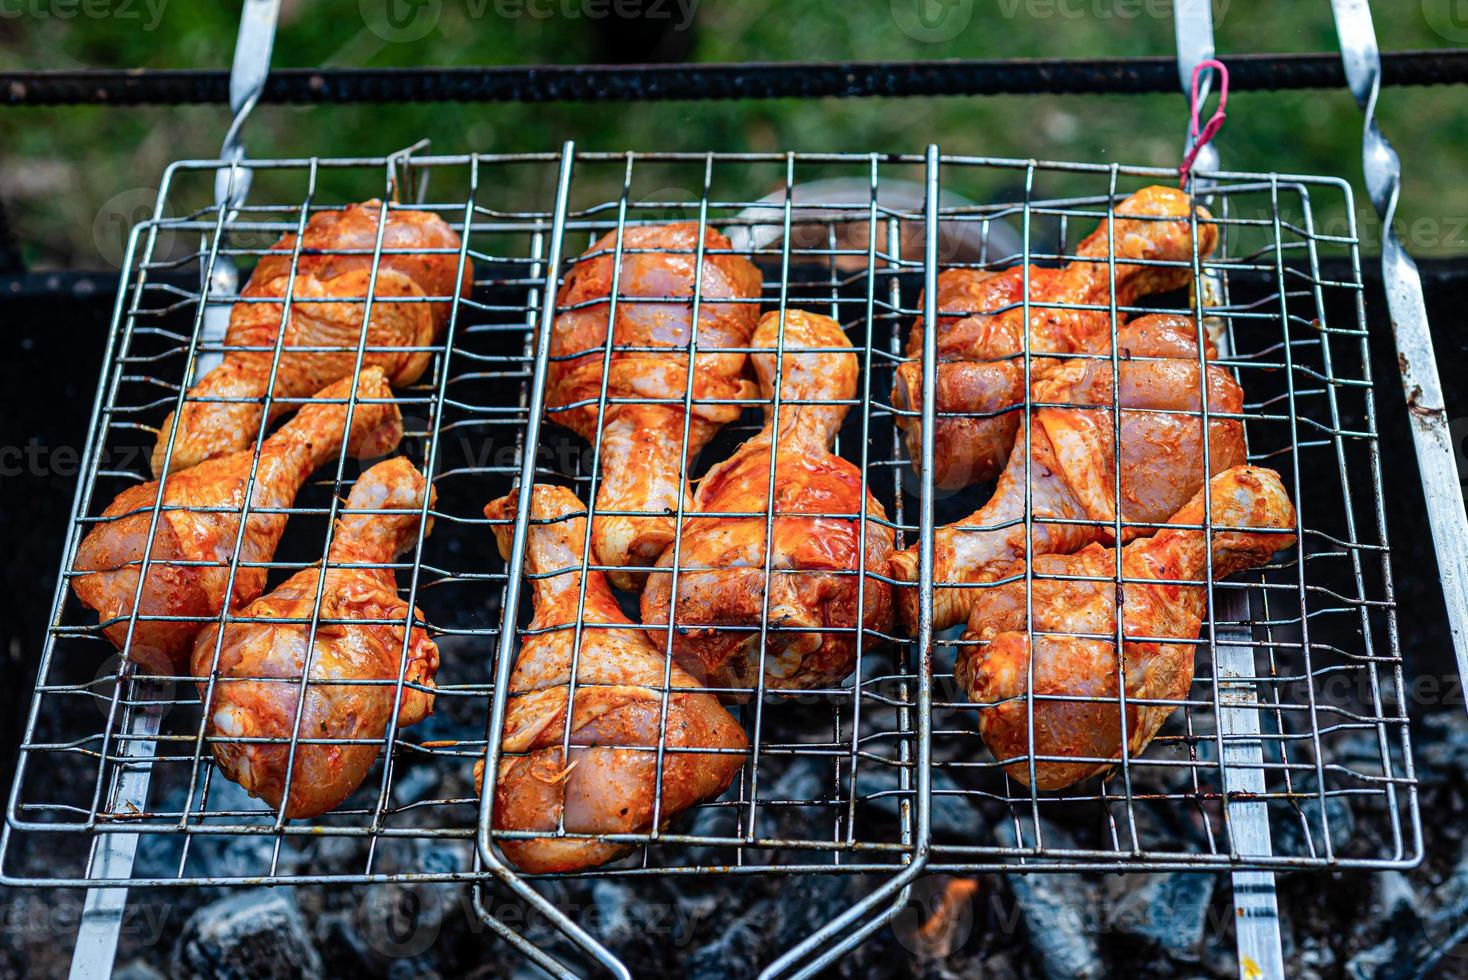 Meat on skewers fried on the grill in the open air photo